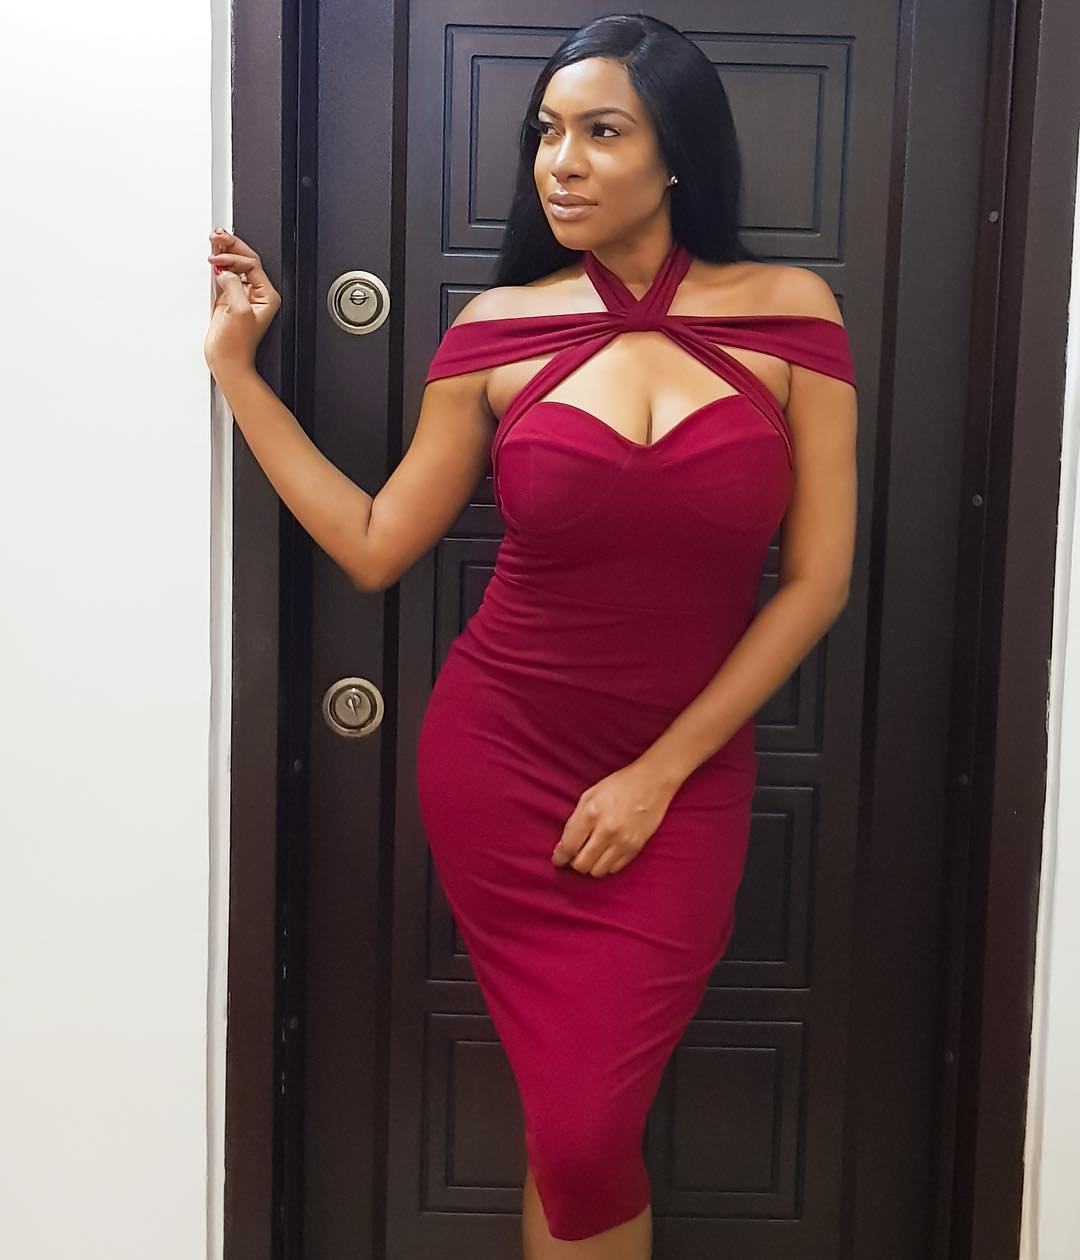 I walked away from my marriage – Chika Ike